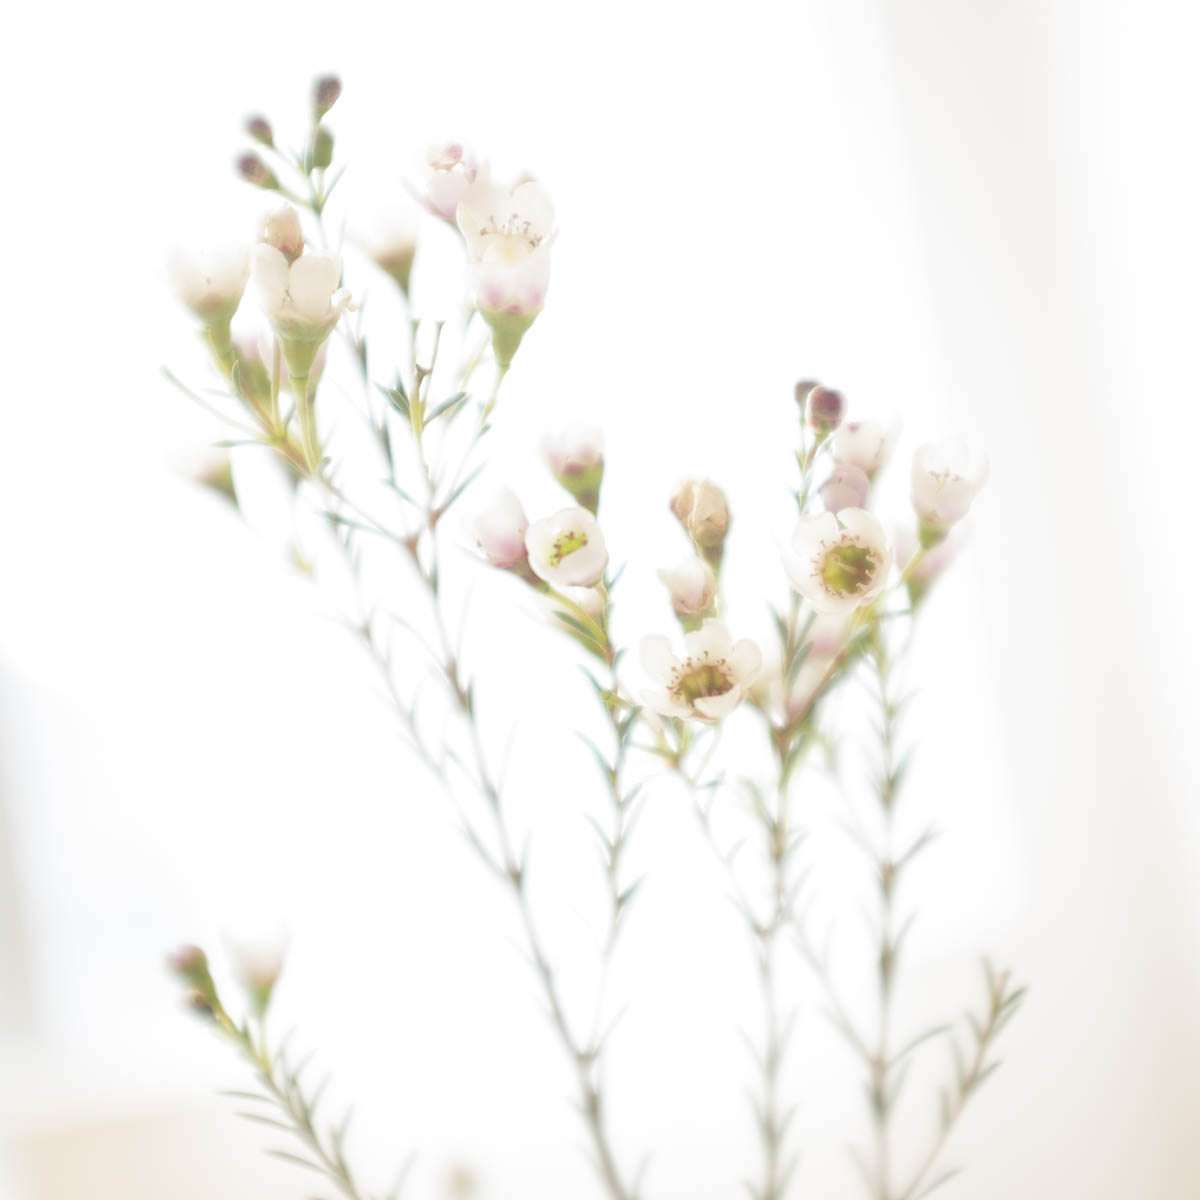 Free stock photo Fresh flowers blooming against sky